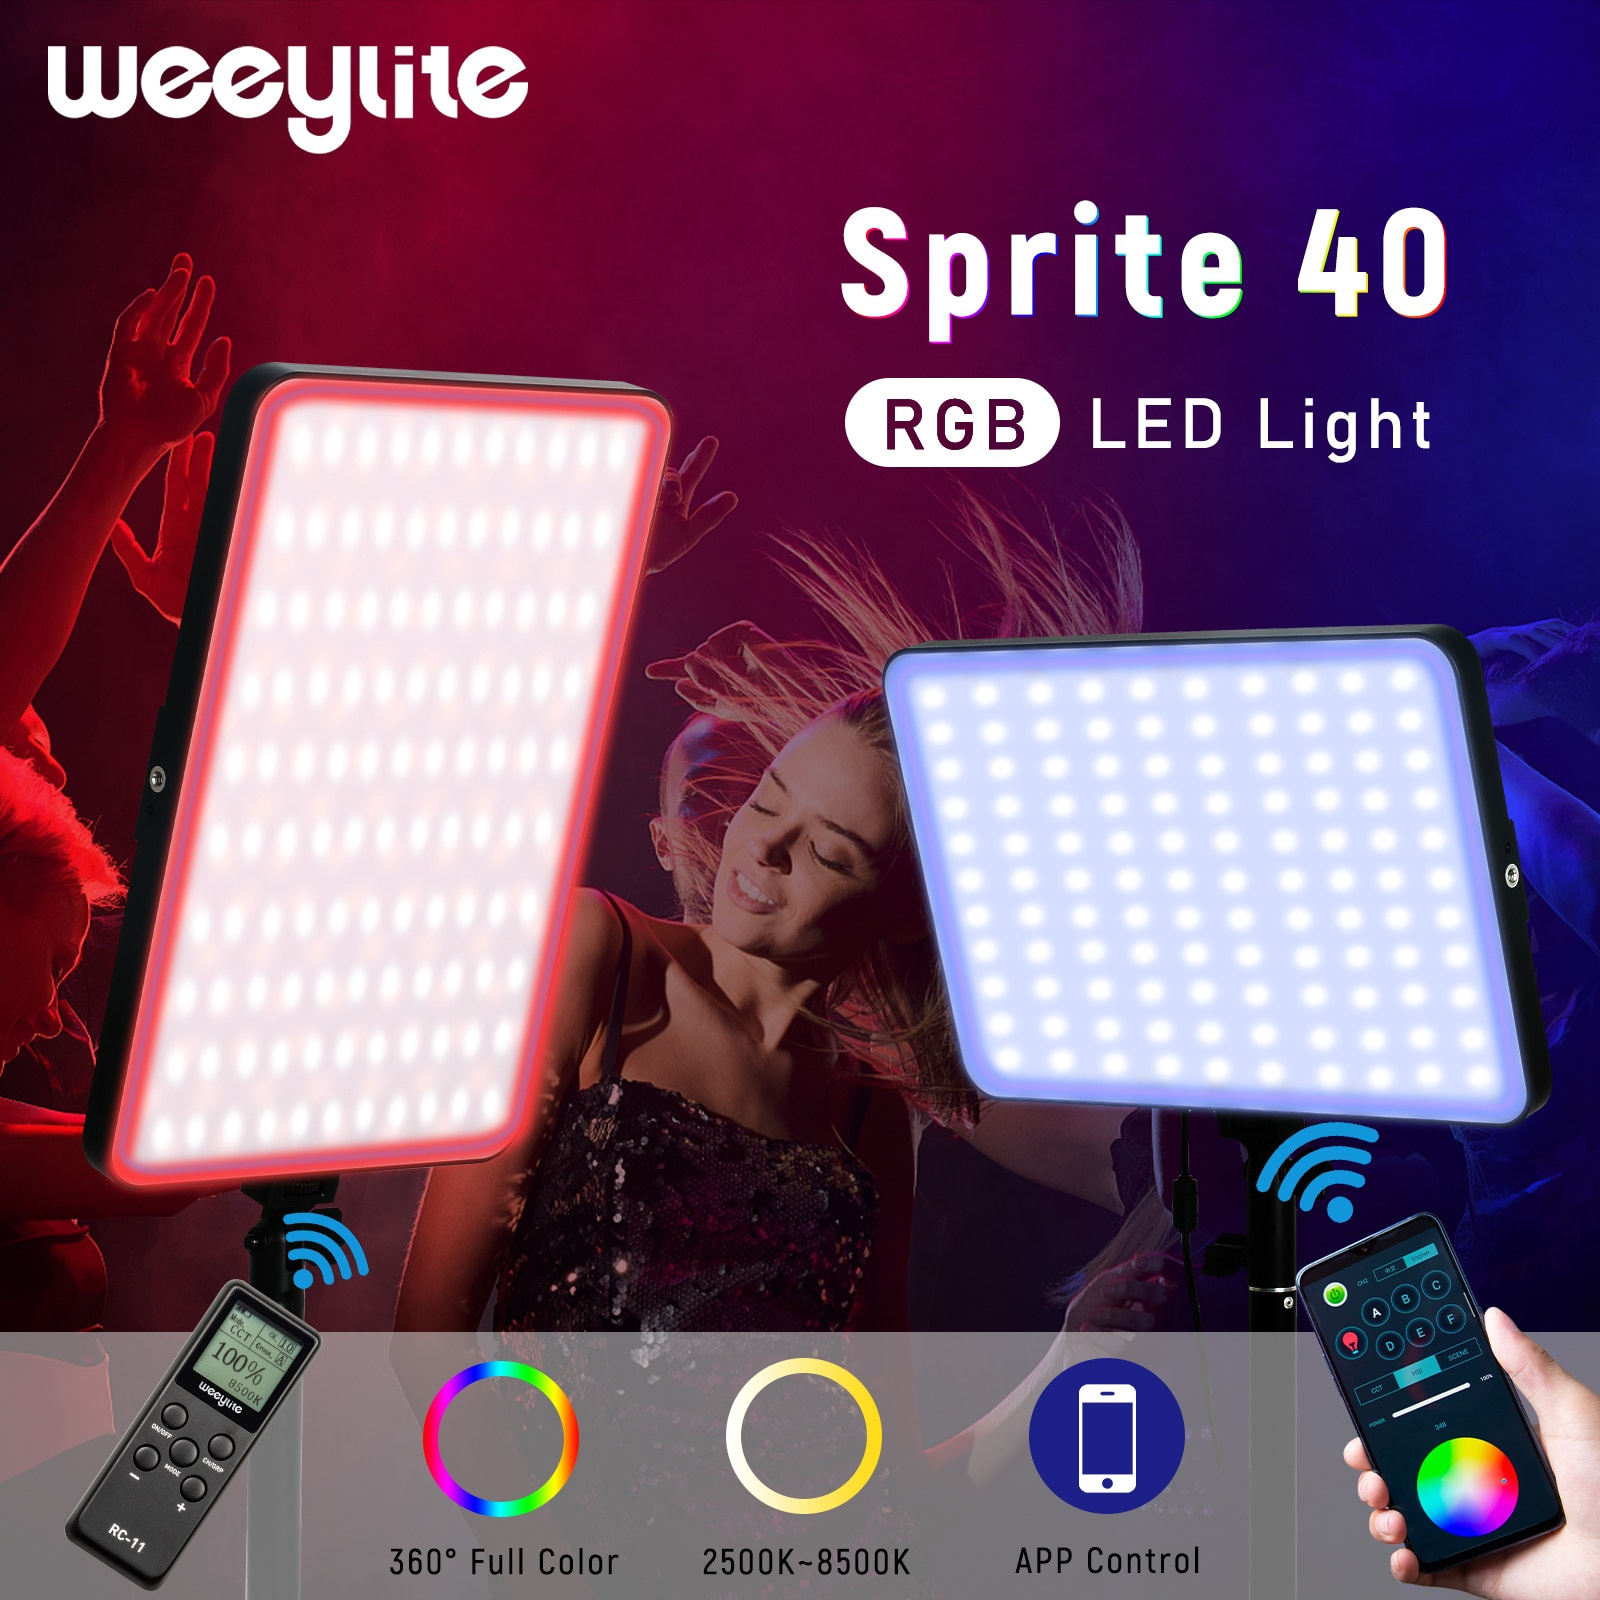 Weeylite sprite40 RGB APP Control LED Light Full Color Photography Lighting Lamp For YouTube Game Live Video Beauty nail skin